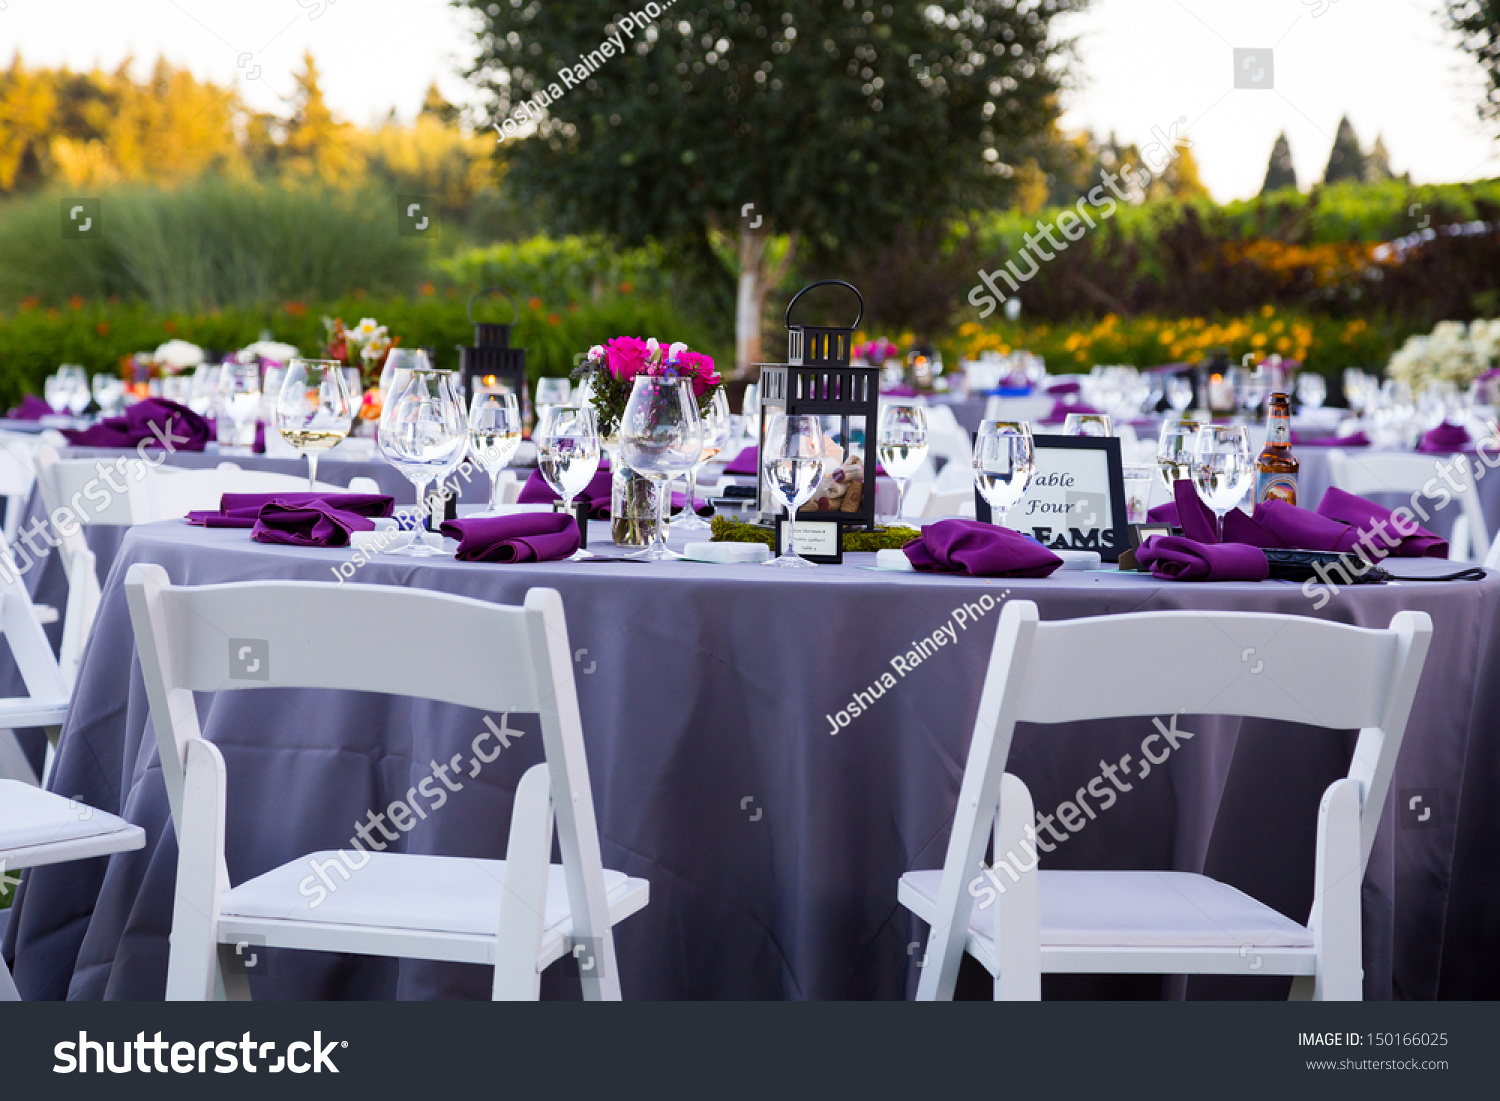 wedding decorations chairs receptions cool and unusual tables decor reception stock